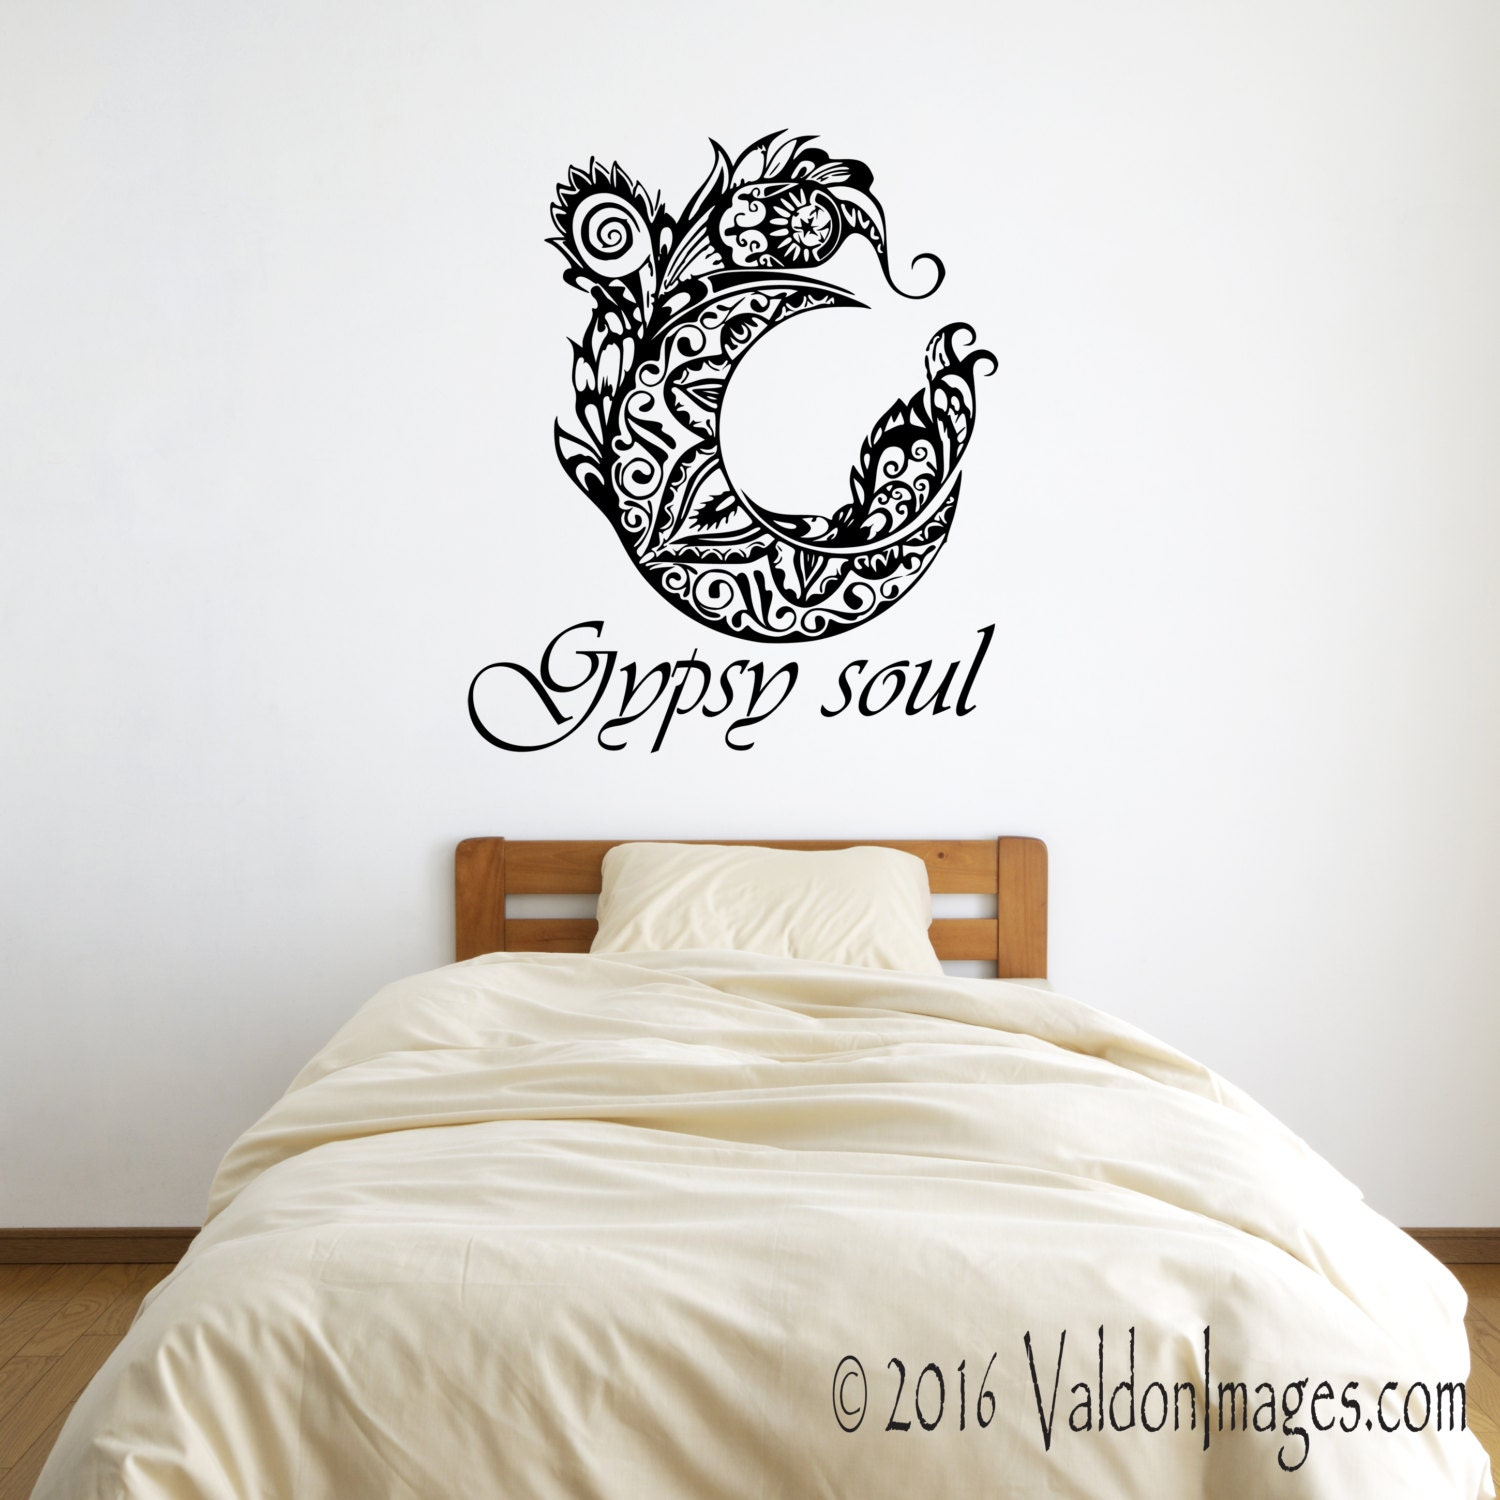 Gypsy soul boho wall decal bohemian wall decal feather wall